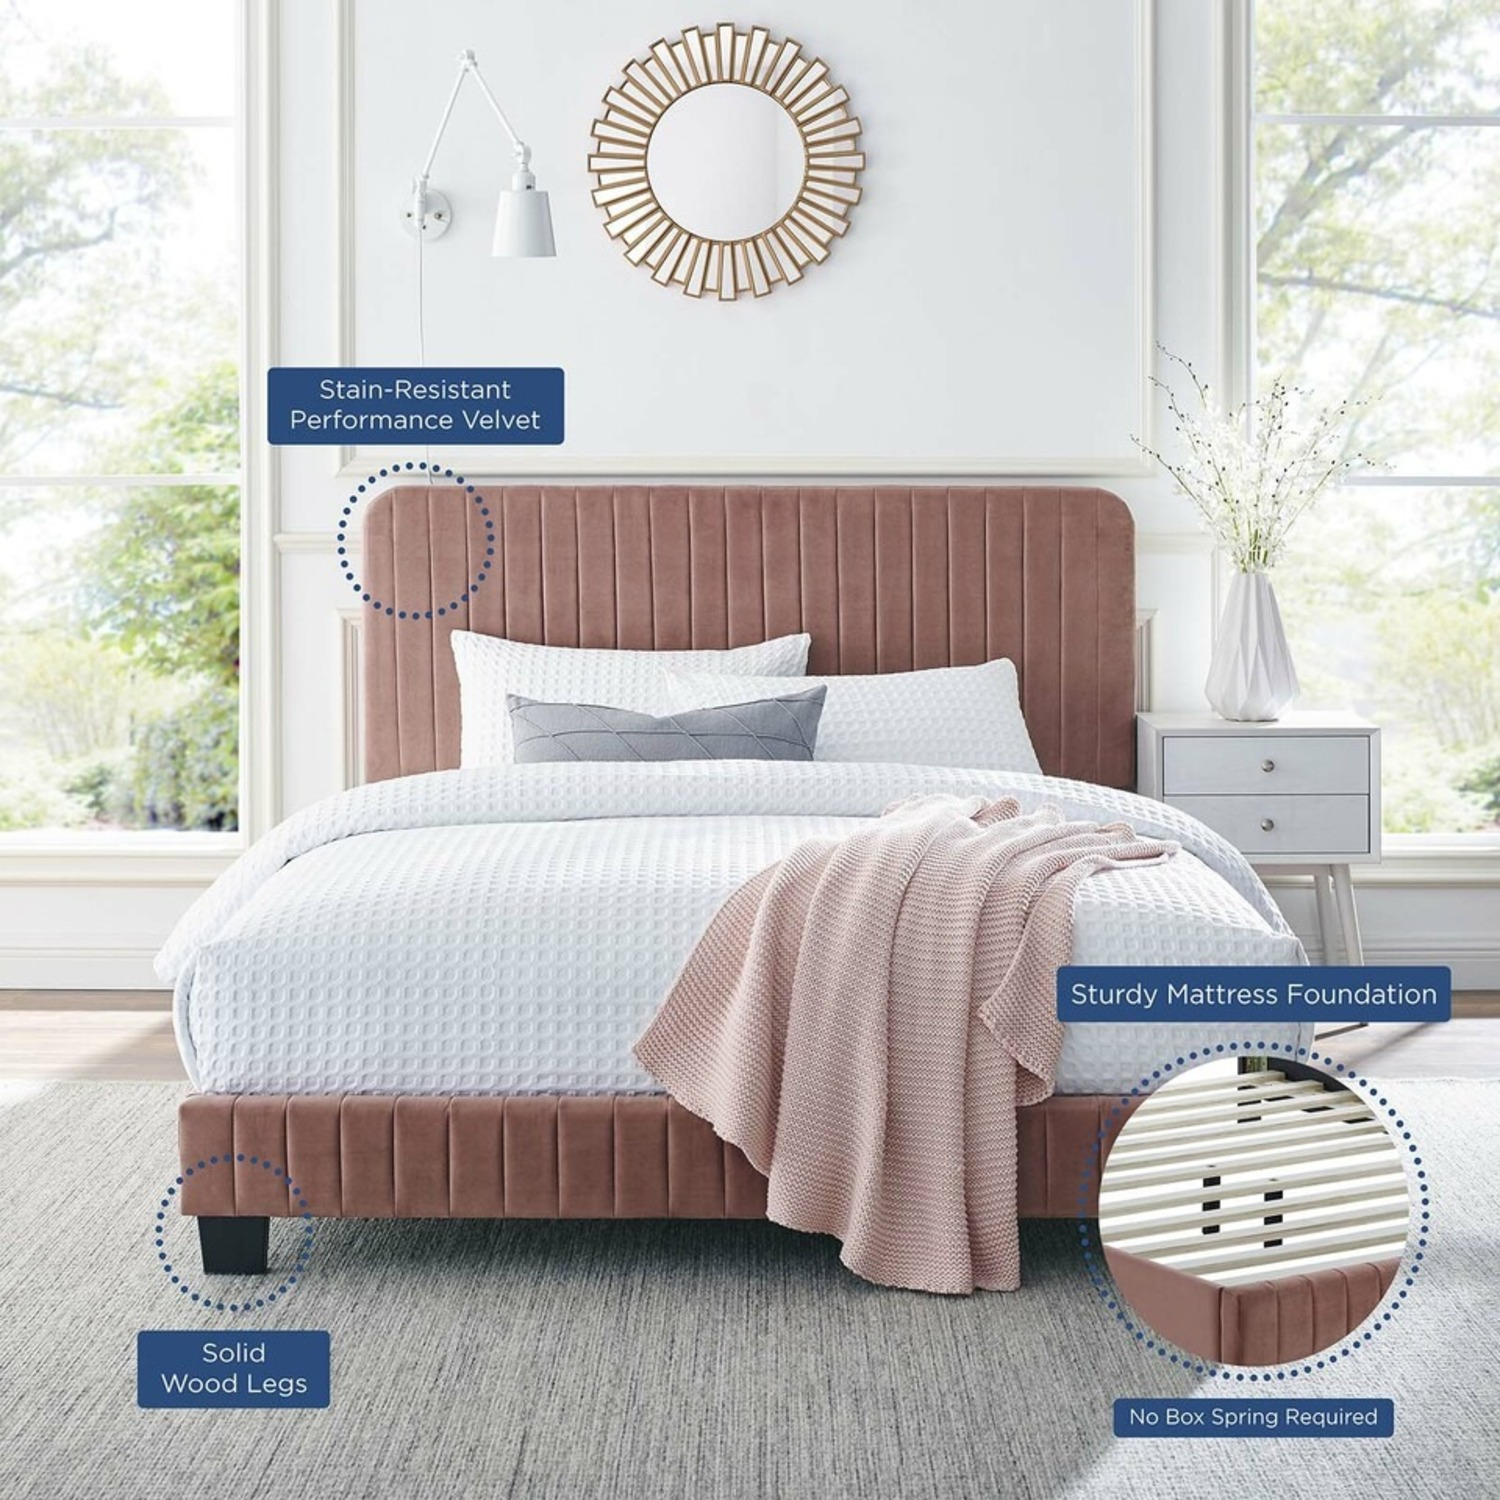 Twin Bed In Dusty Rose Tufted Velvet Fabric Finish - image-6